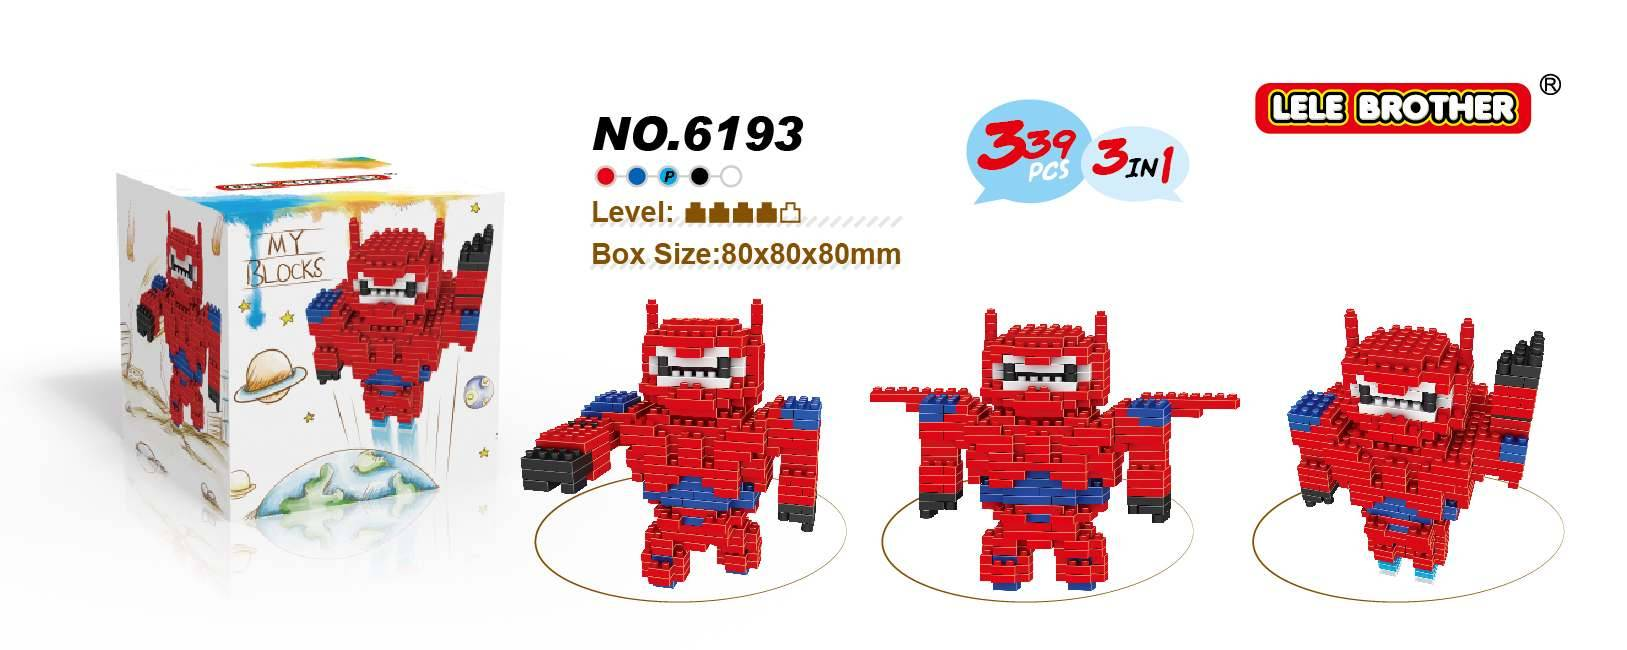 Nano Block Lele Brother Big Hero Baymax Robot 3 in 1 Hot-Selling Item 2015